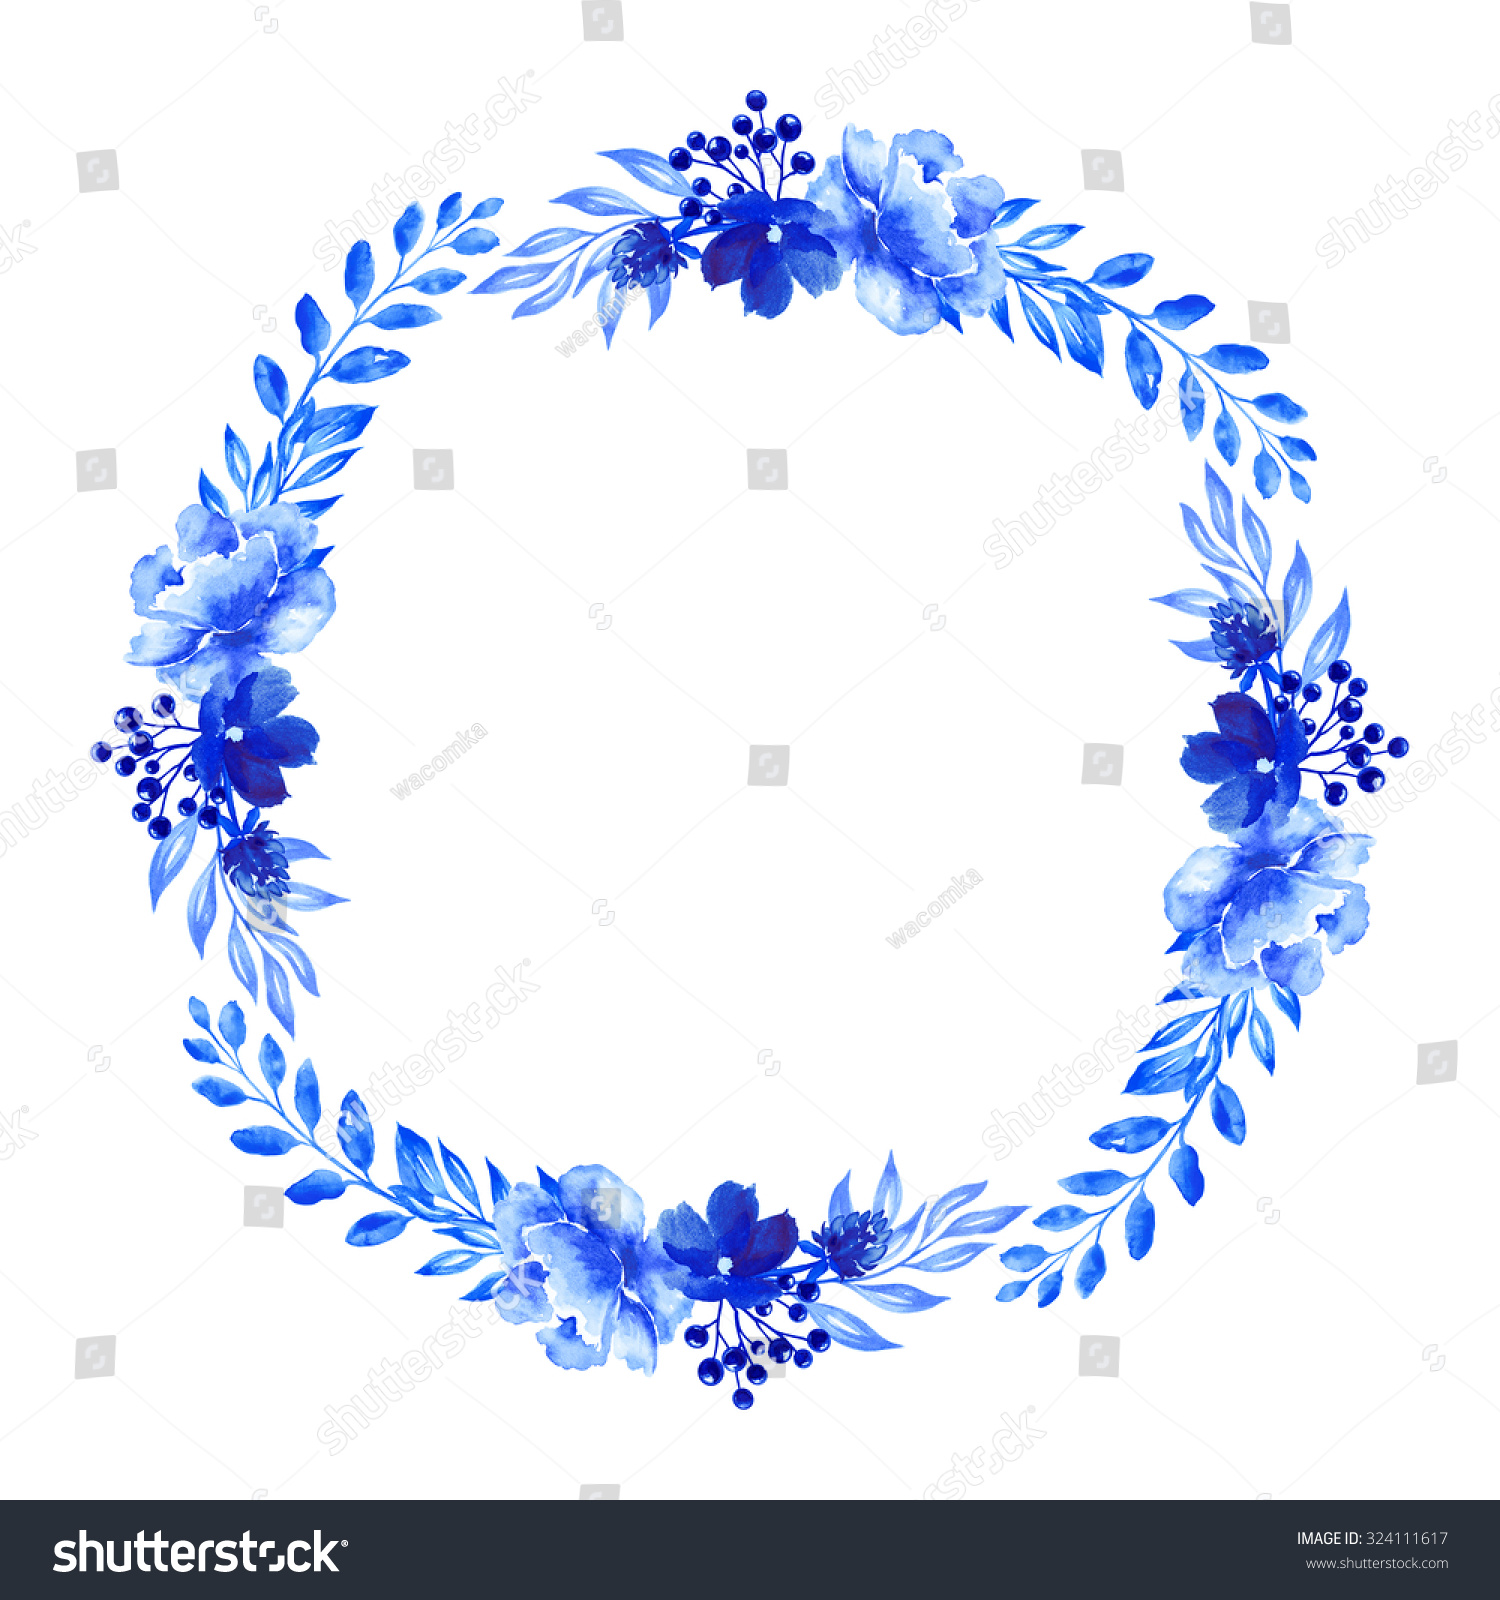 Artistic floral element abstract gzhel folk art blue flowers stock - Flowers Watercolor Illustration Wreath Blue Floral Design Element Isolated On White Background